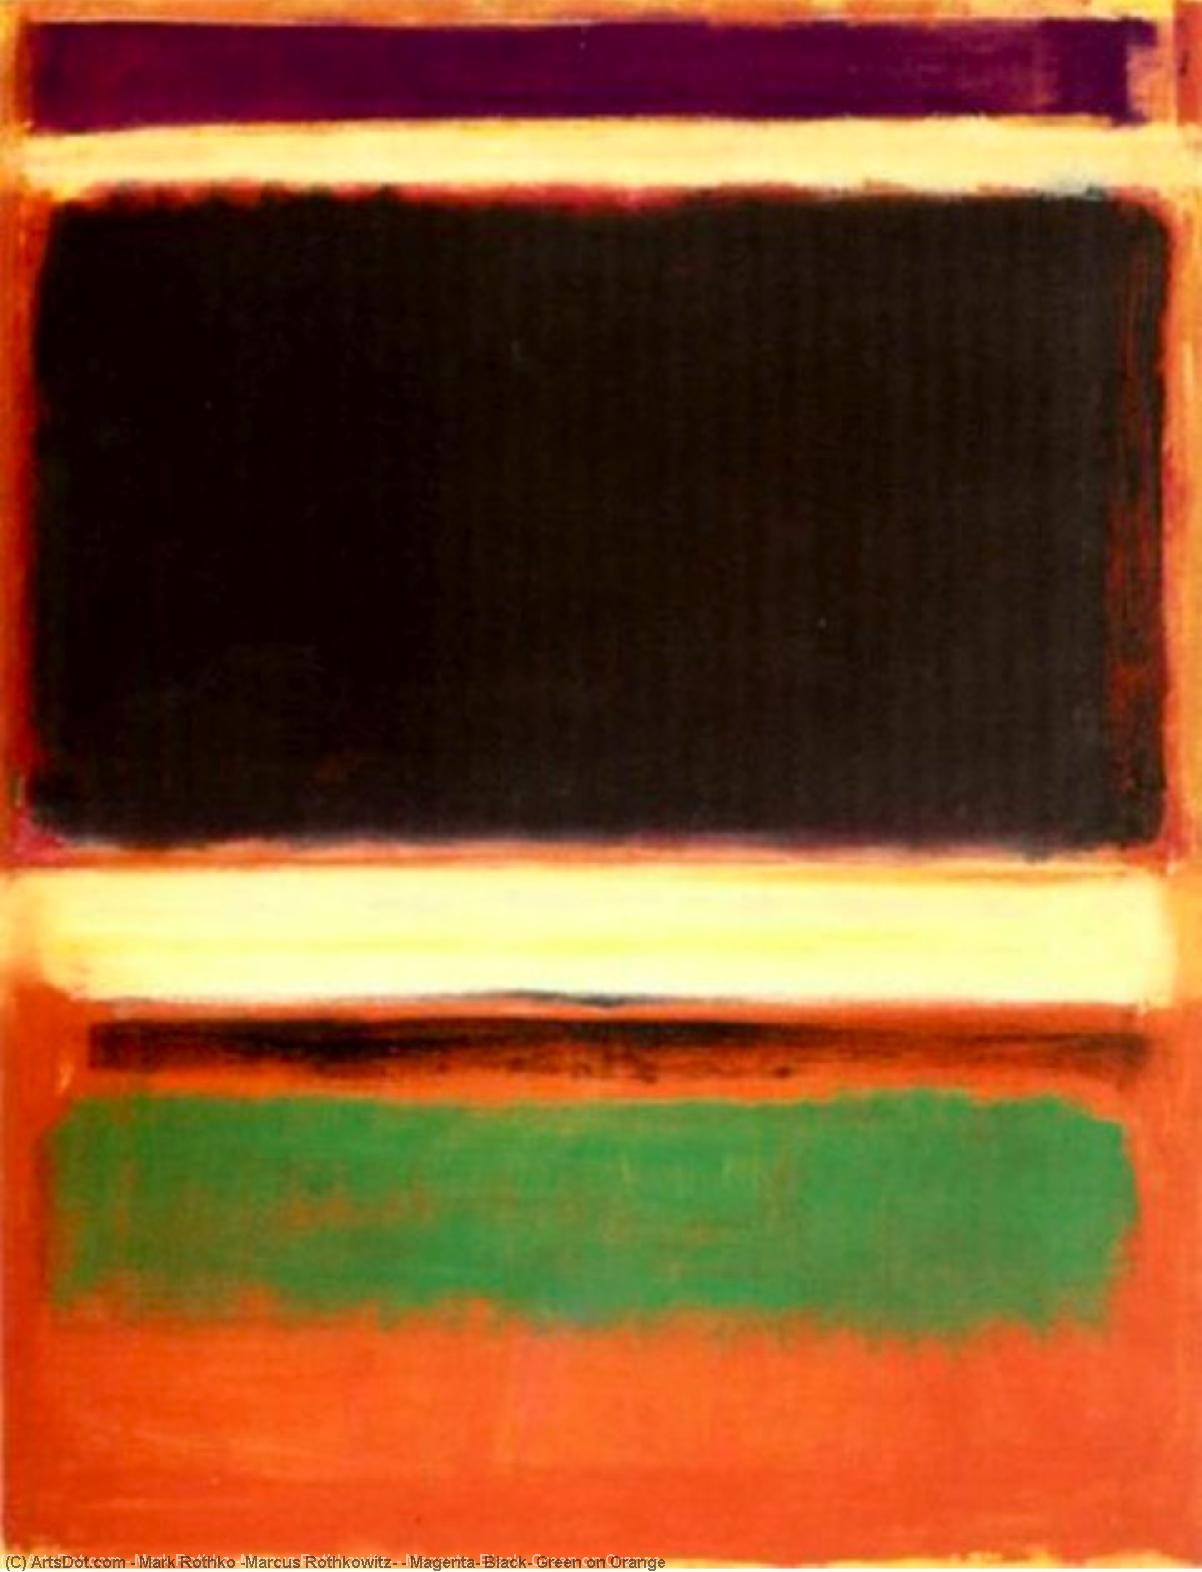 Magenta, Black, Green on Orange by Mark Rothko (Marcus Rothkowitz) (1903-1970, Latvia) |  | ArtsDot.com